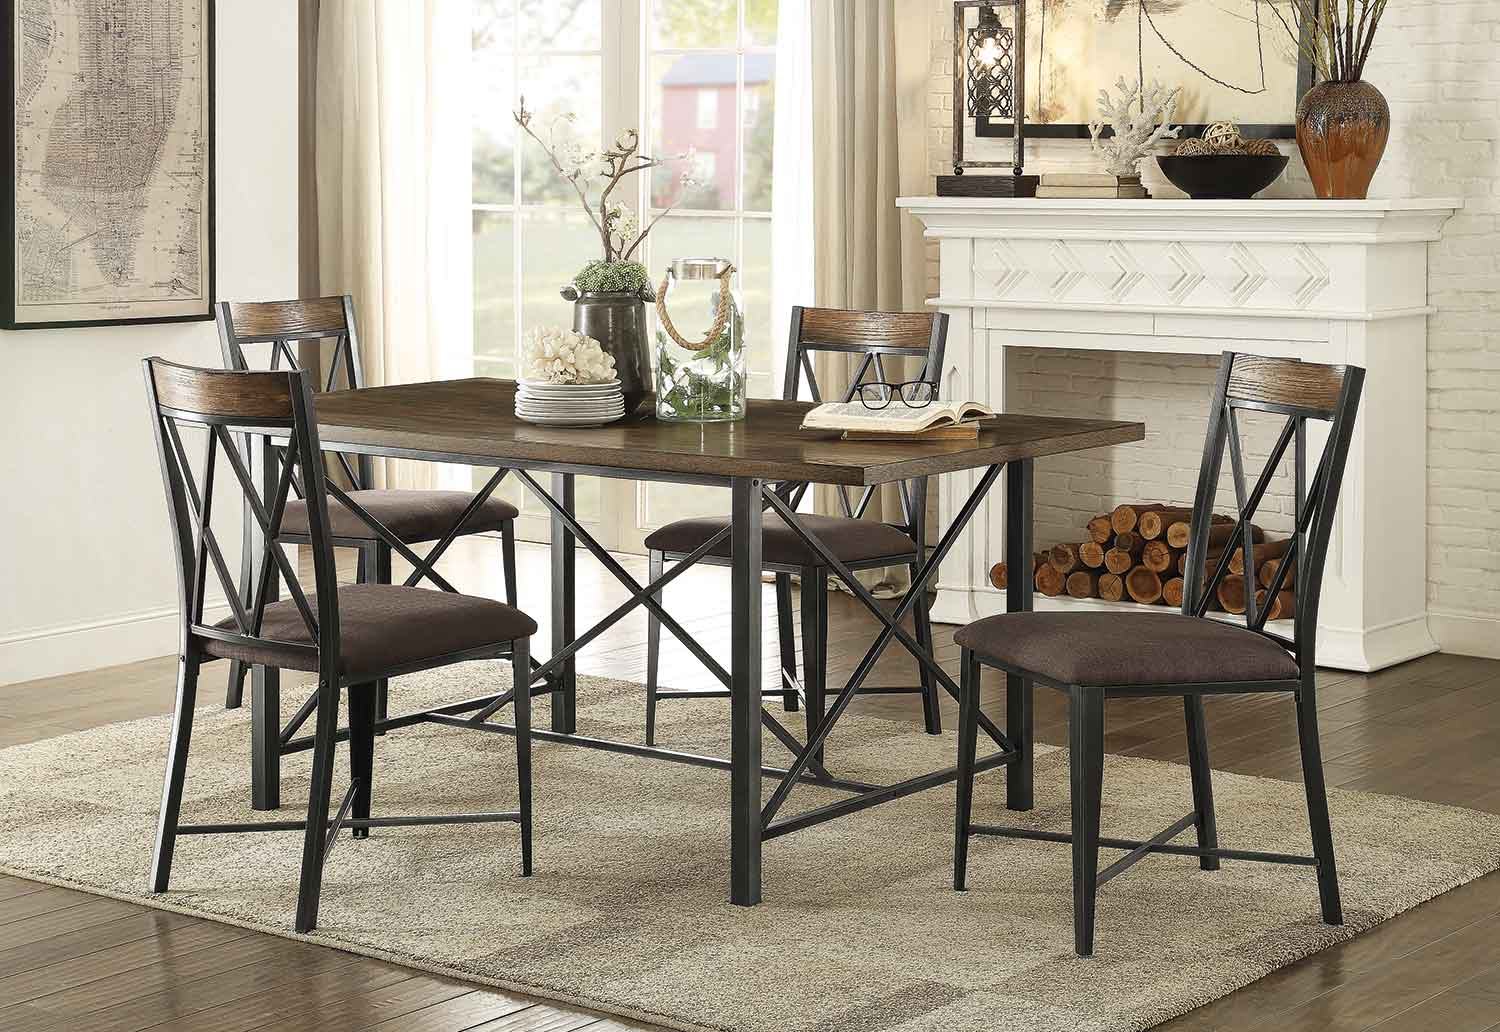 Homelegance Sage Rectangular Dining Set - Burnish Finish